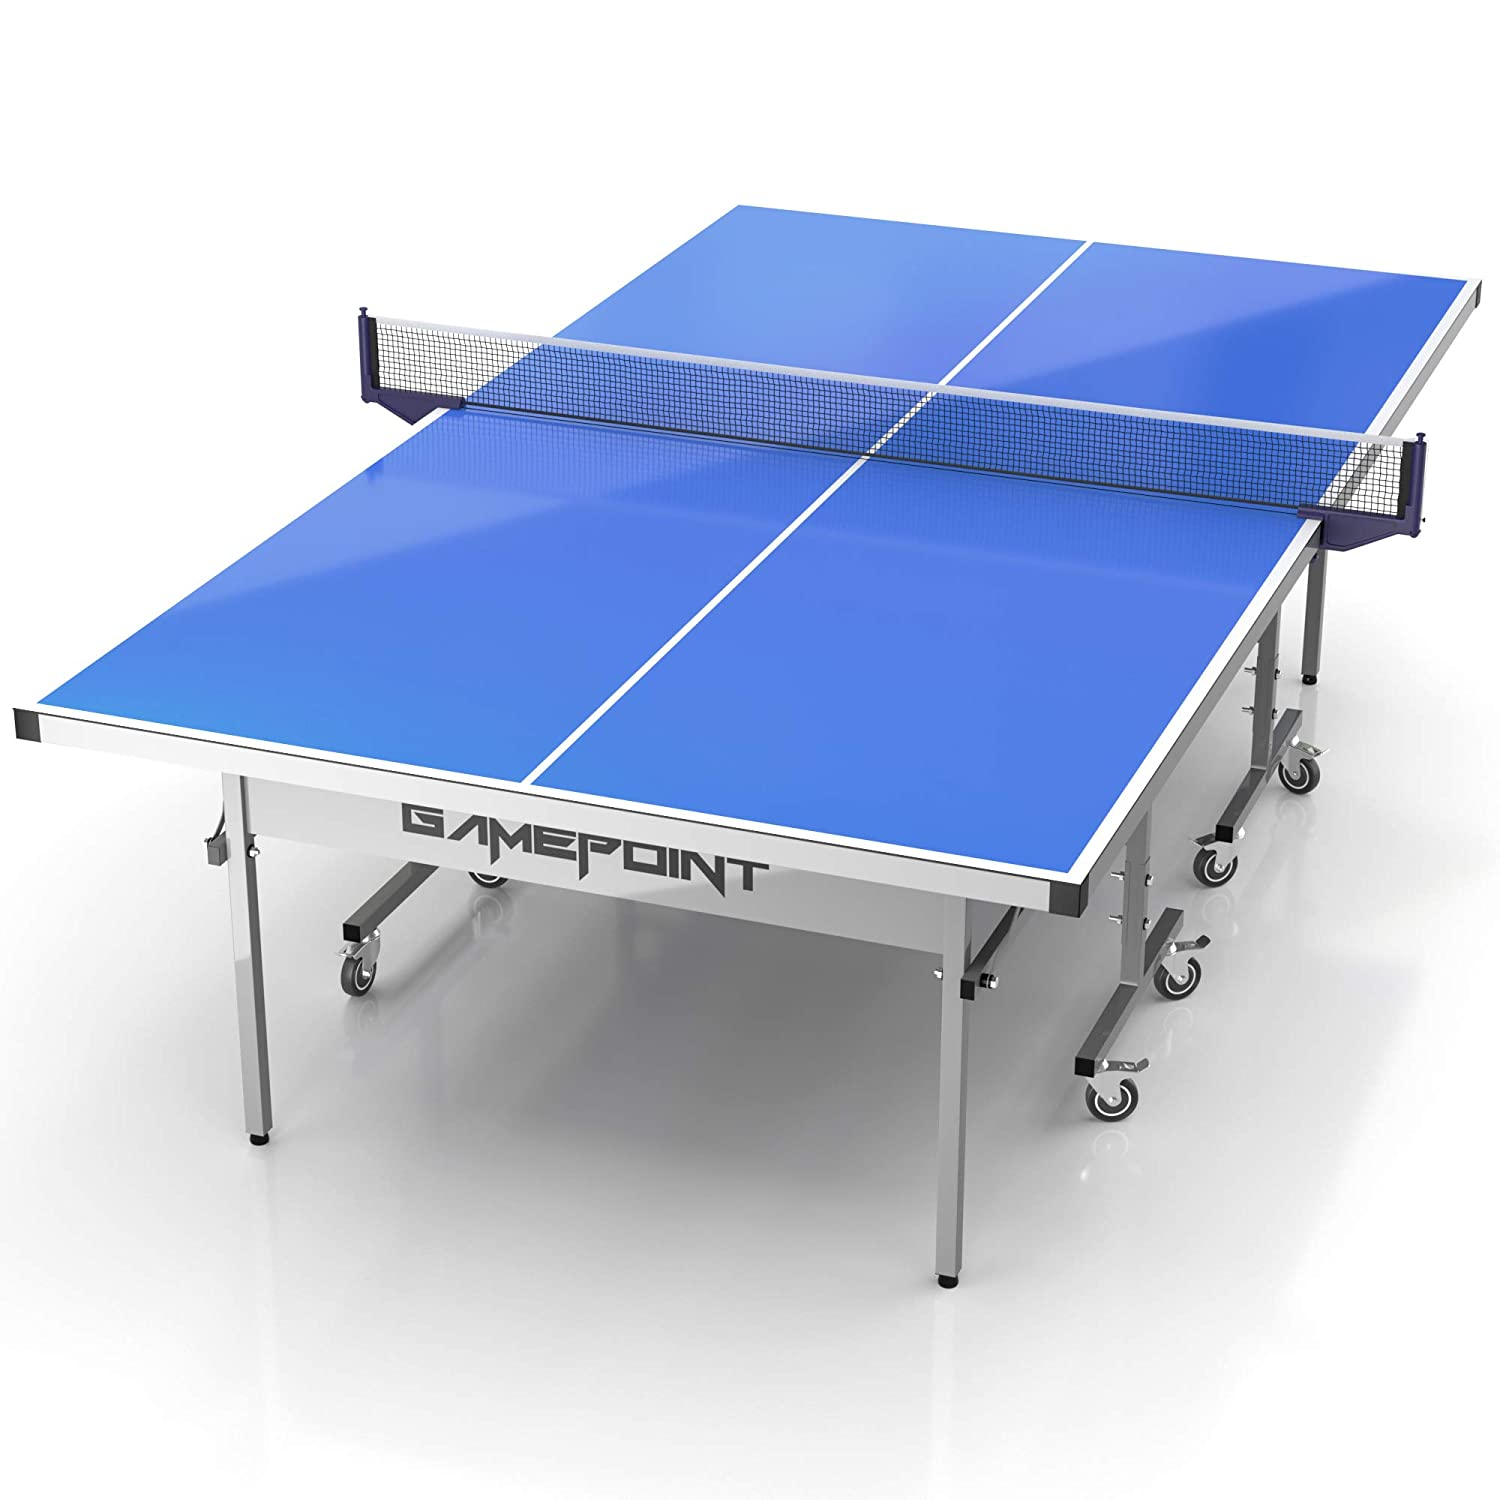 GamePoint Tables Outdoor Ping-Pong Table (Best Portable Ping-pong Table)